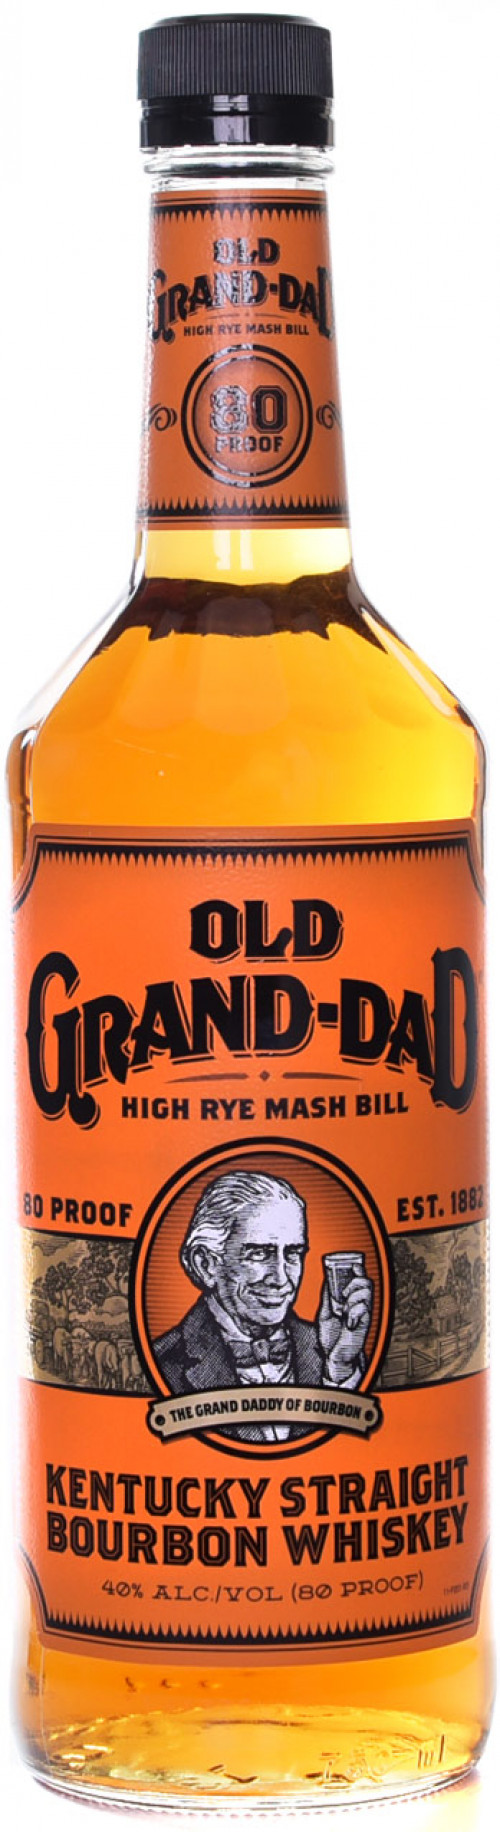 Old Grand-Dad 80 Proof 1.75L